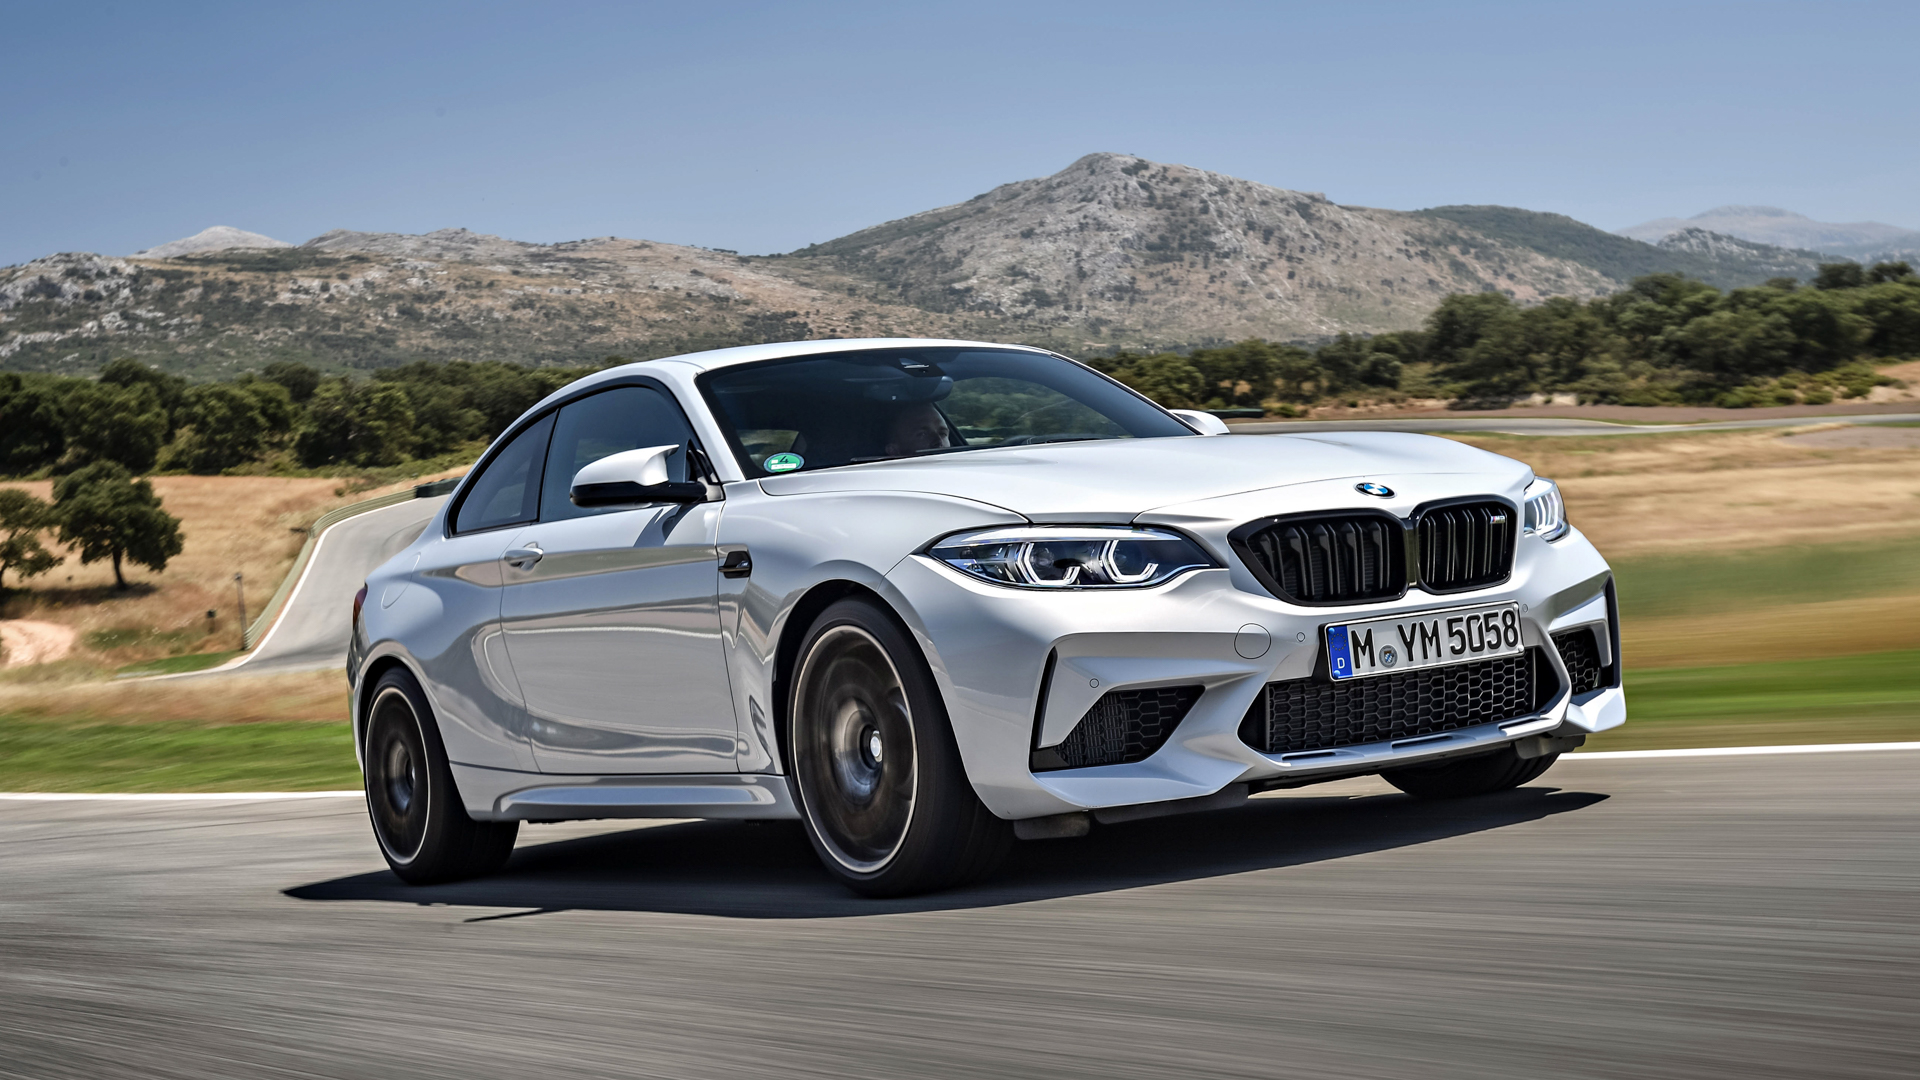 BMW M2 CS M2 Comp Comparisons 5 of 12